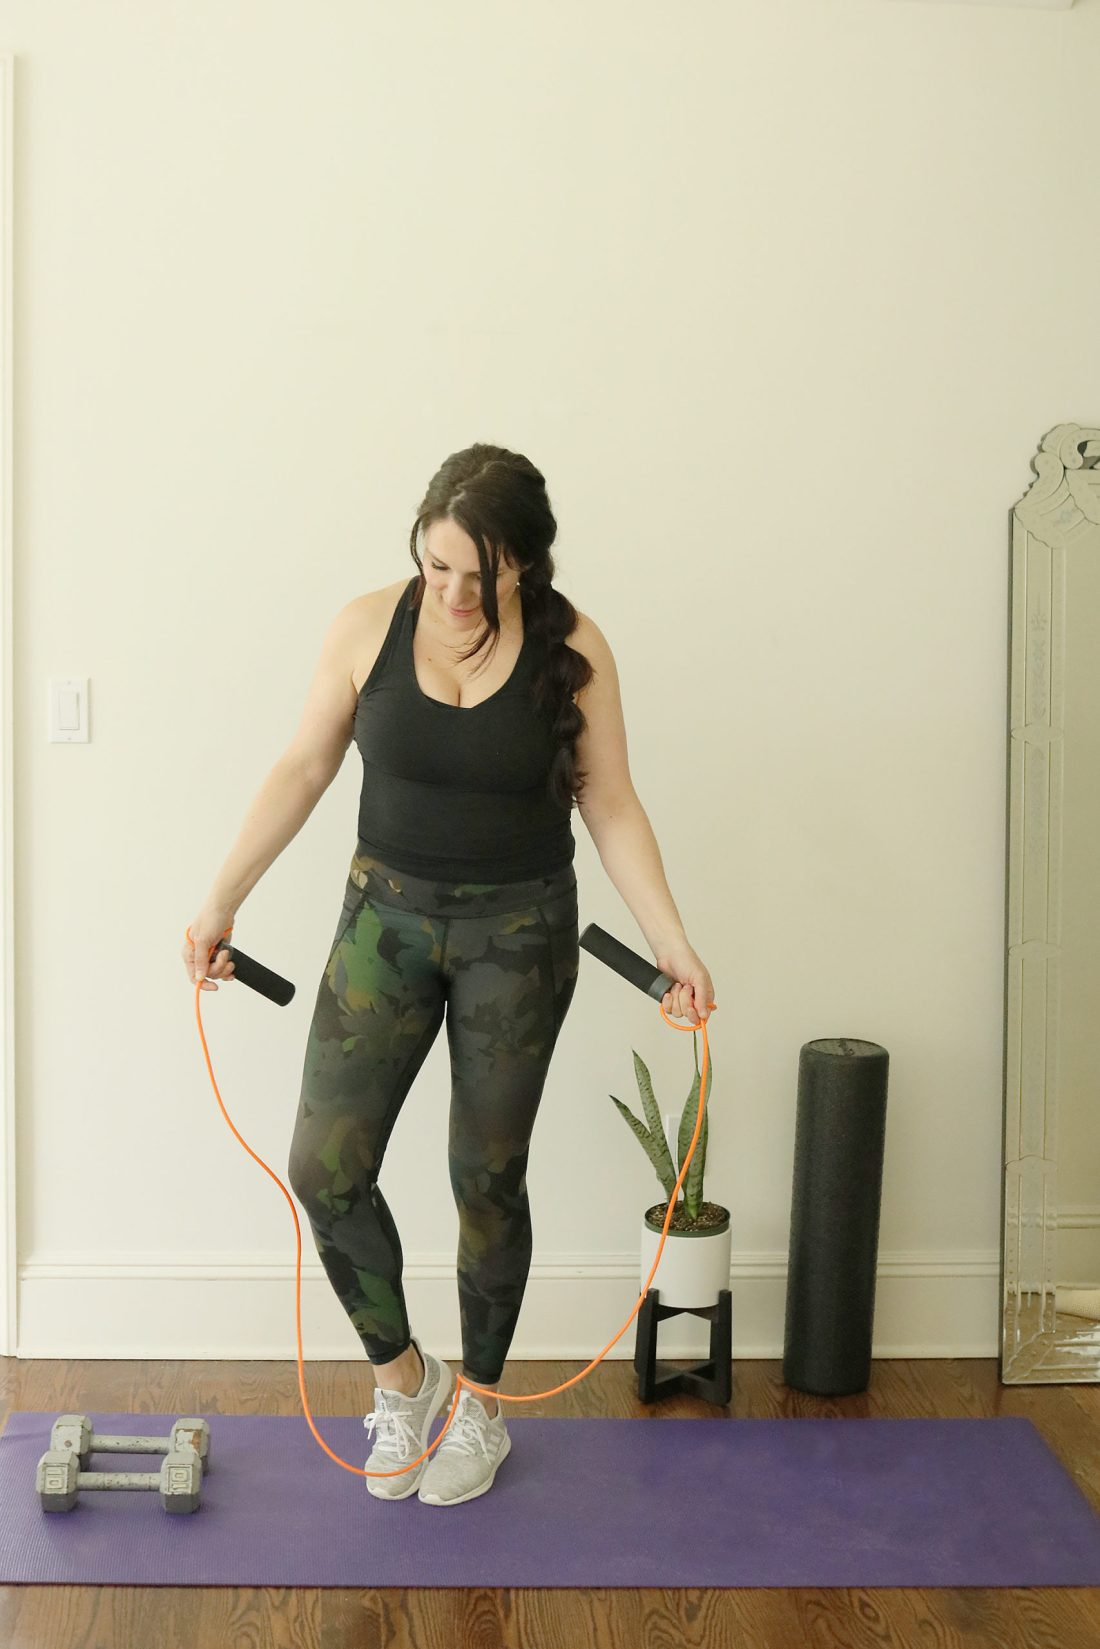 Stuck at home? Here are the best of the best must-haves for home exercise equipment that will work that booty without leaving the comfort of your home. || Darling Darleen Top Lifestyle Blogger #homeexercise #homefitnessequipement #darlingdarleen